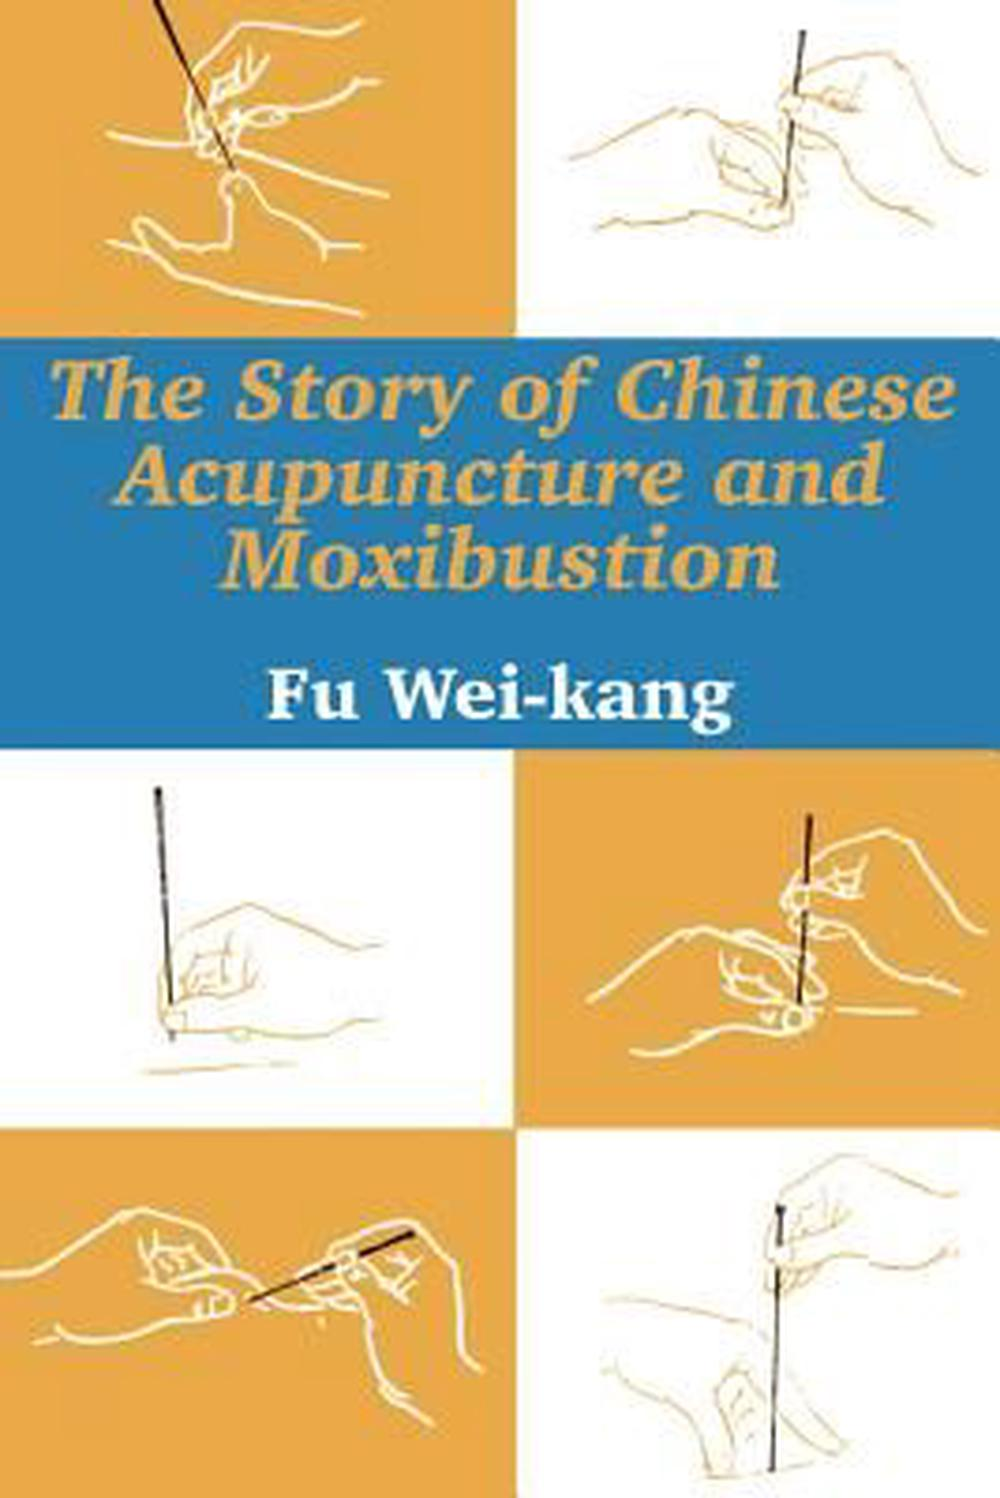 The Story of Chinese Acupuncture and Moxibustion